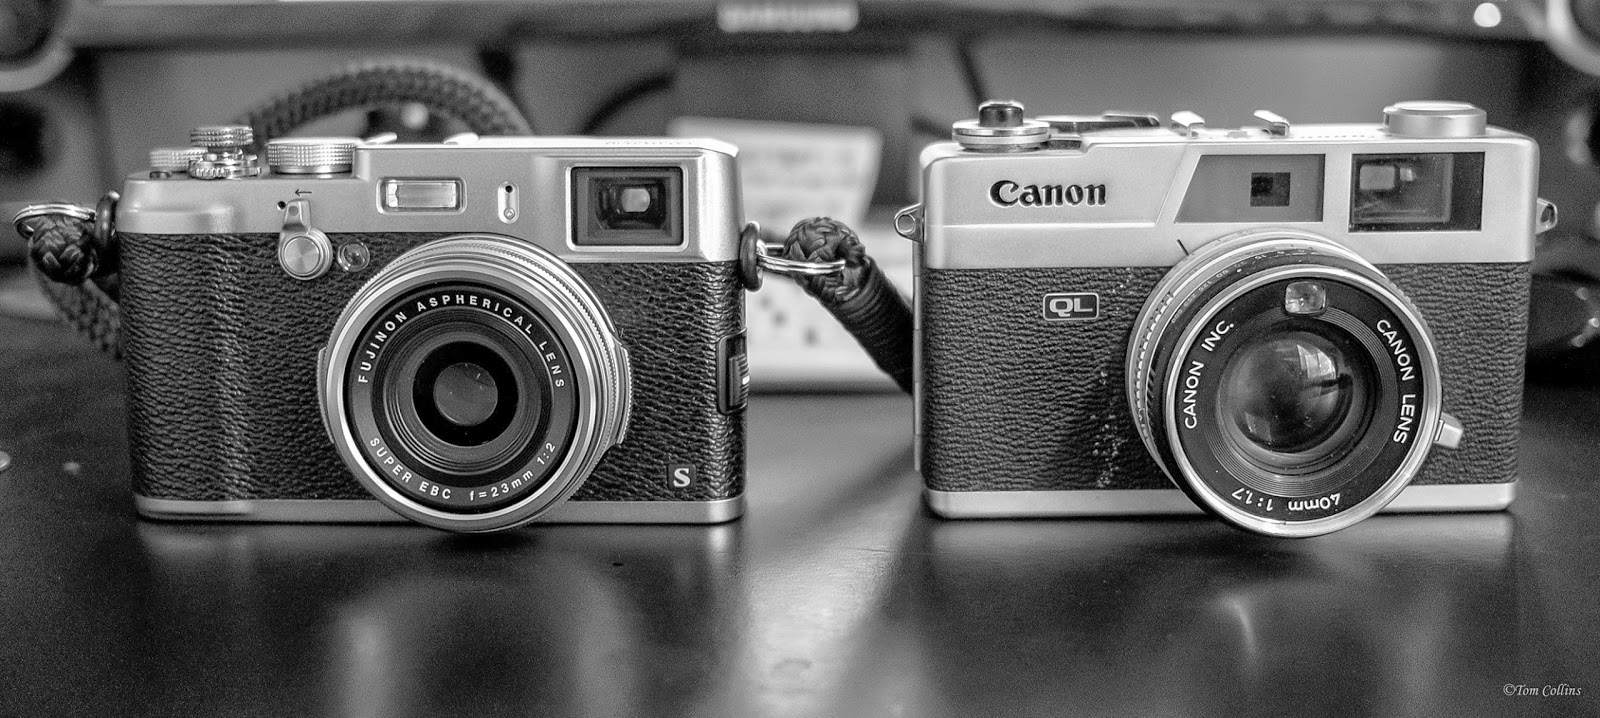 My Fuji X100s and My 45 Year Old Canon QL17 ~ Photography Gone Full Circle